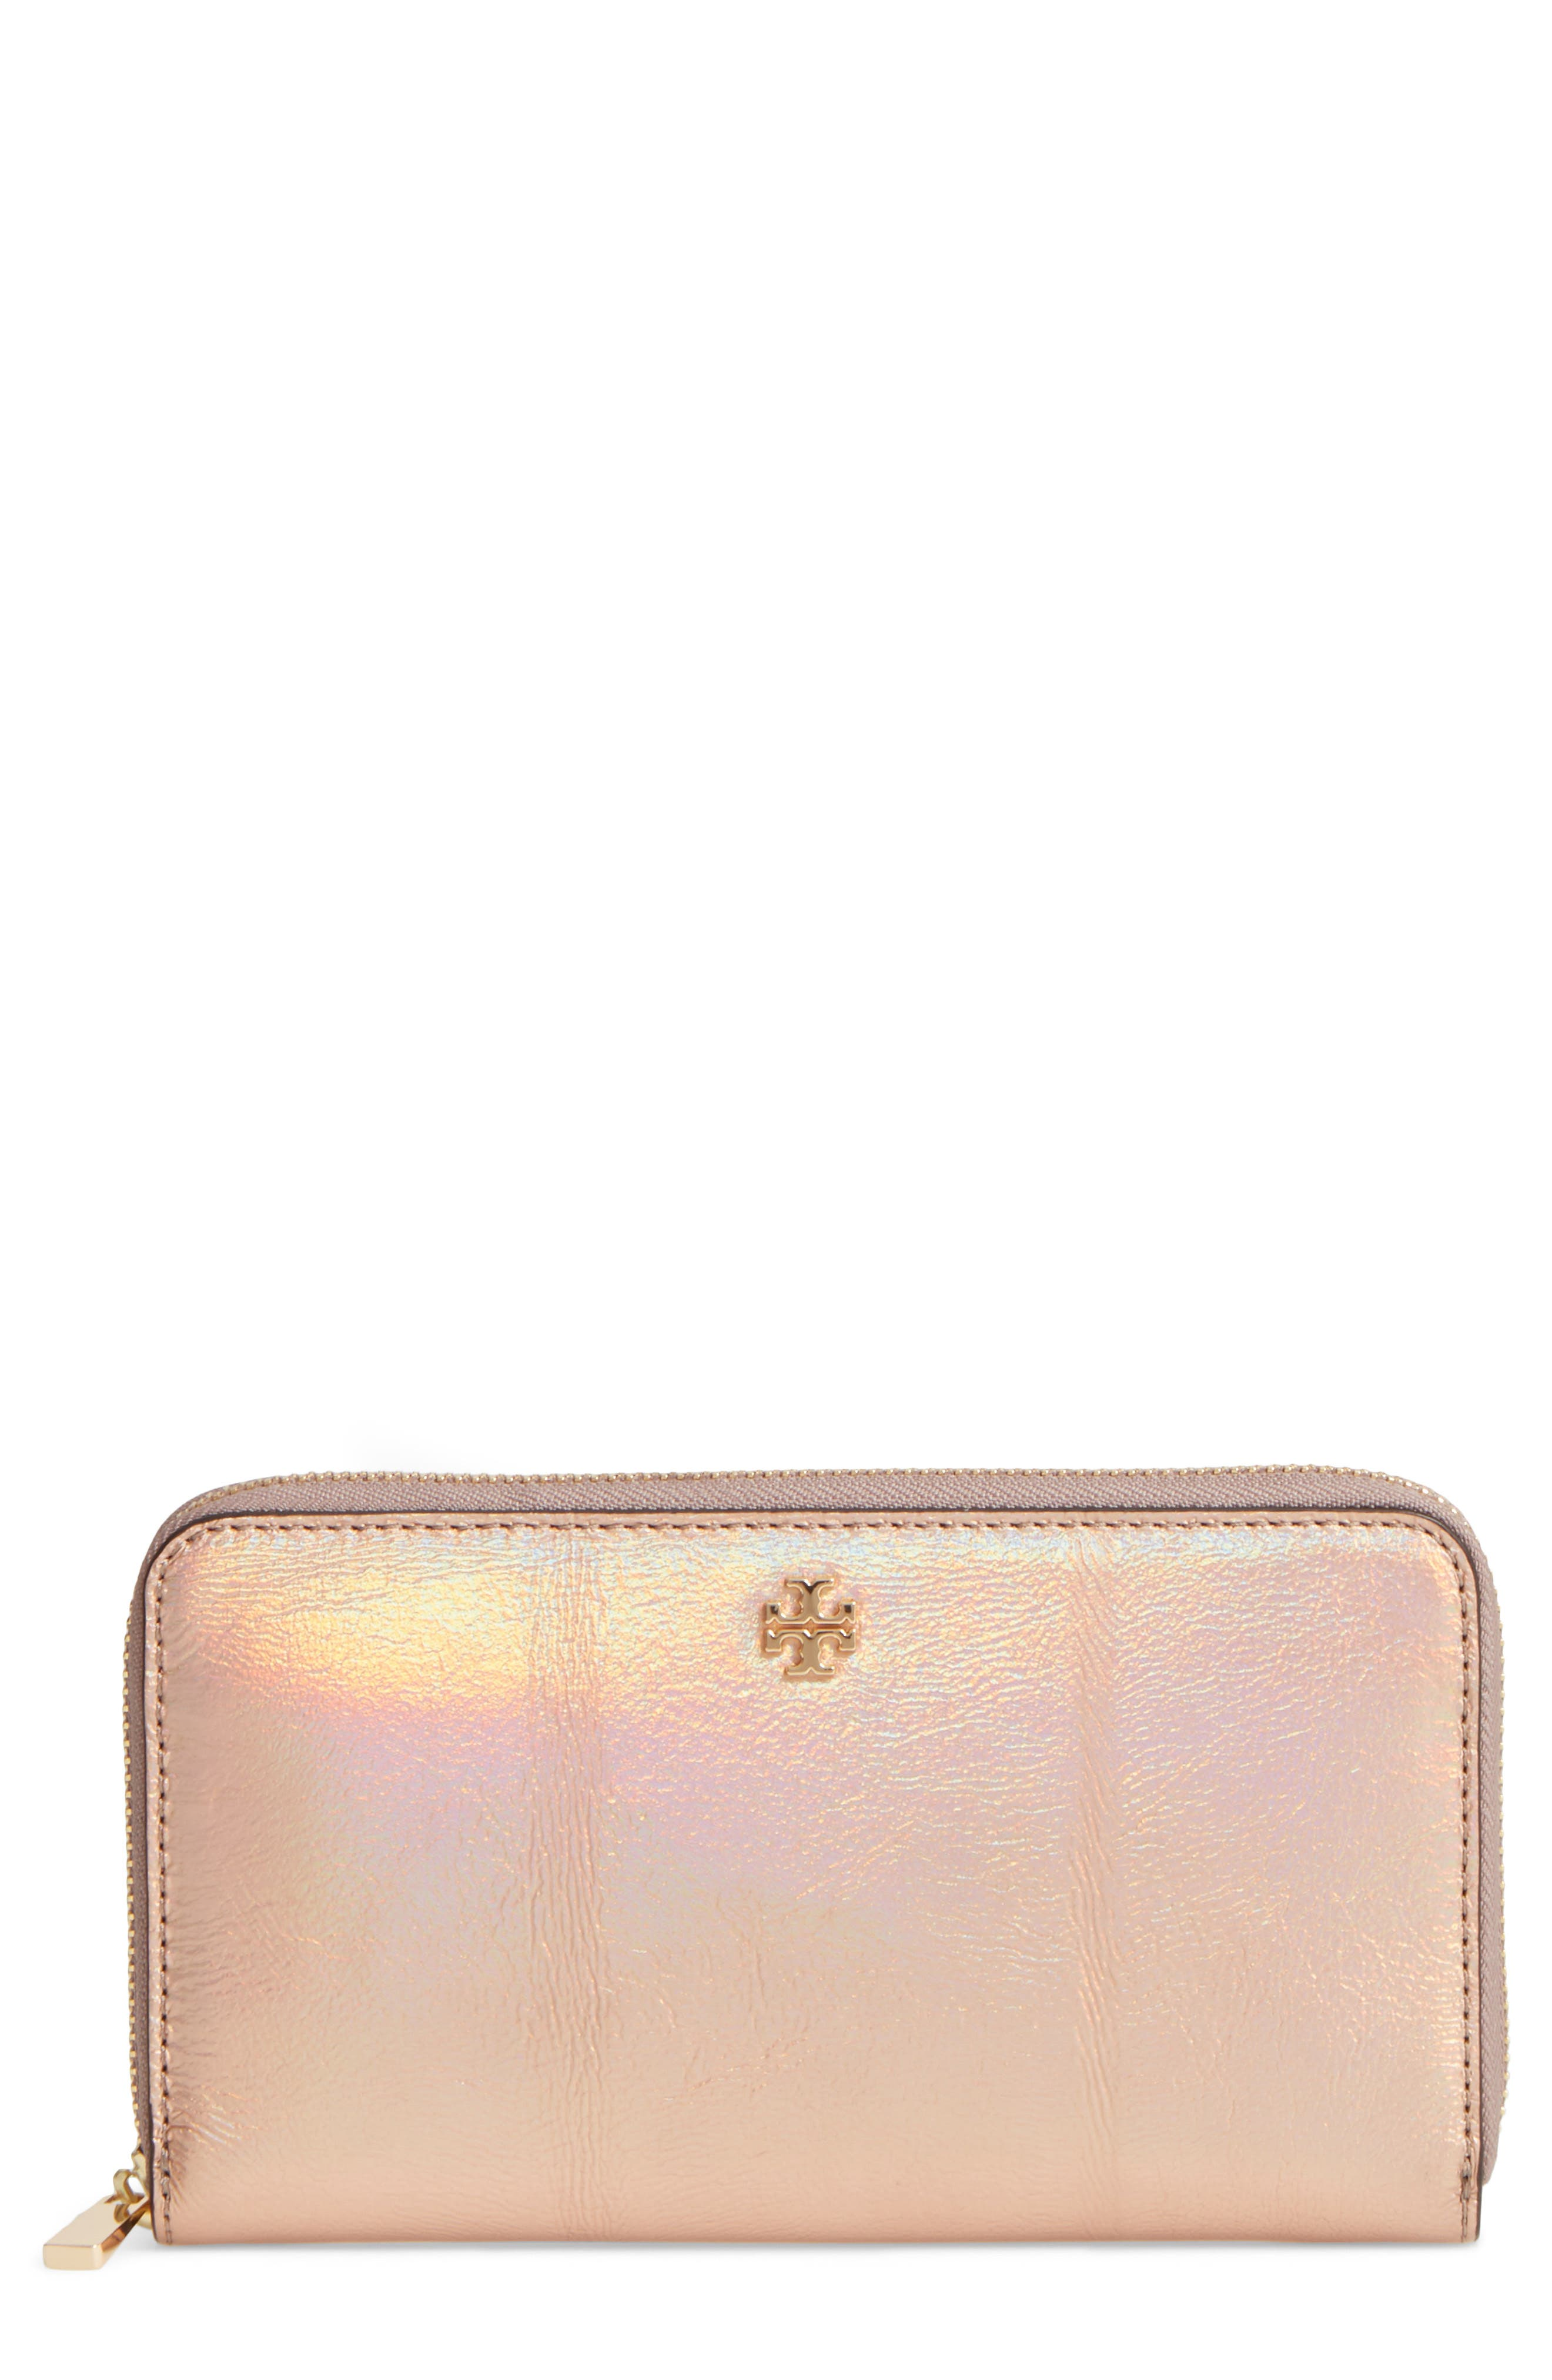 Main Image - Tory Burch Robinson Metallic Leather Continental Wallet